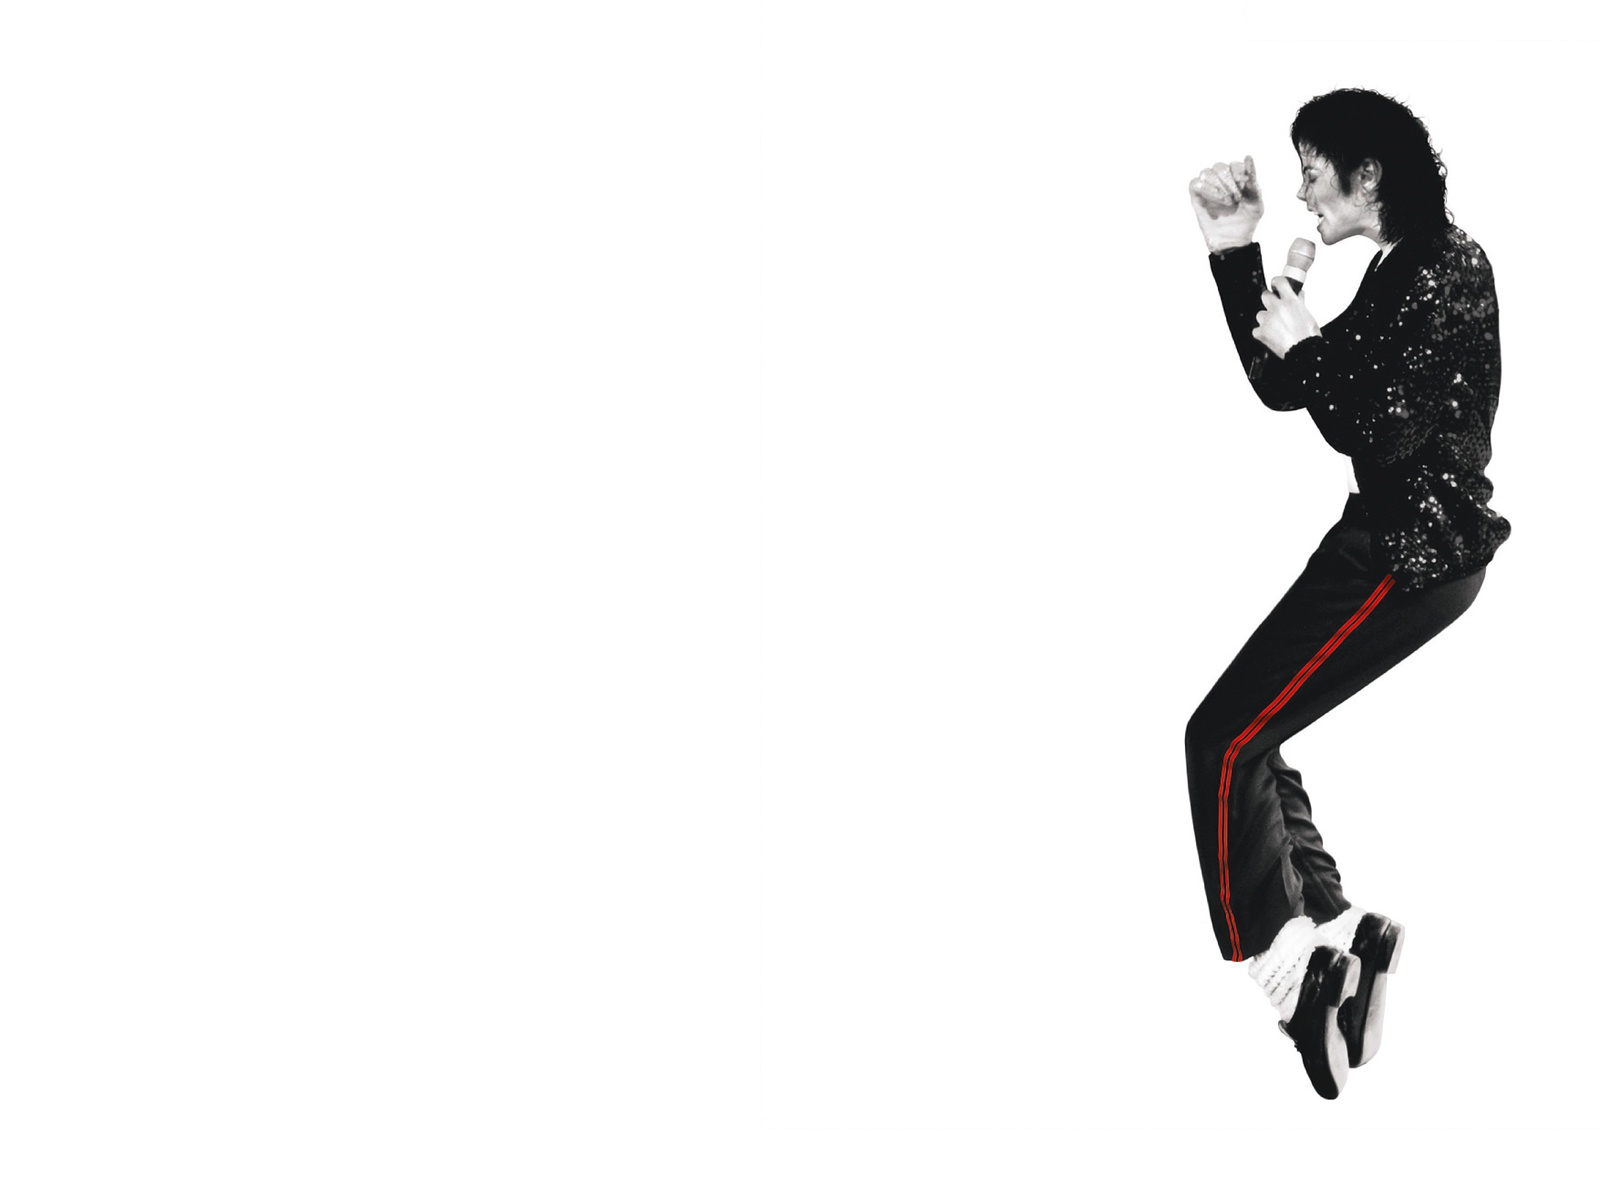 Michael jackson dancing wallpapers for free download about 67